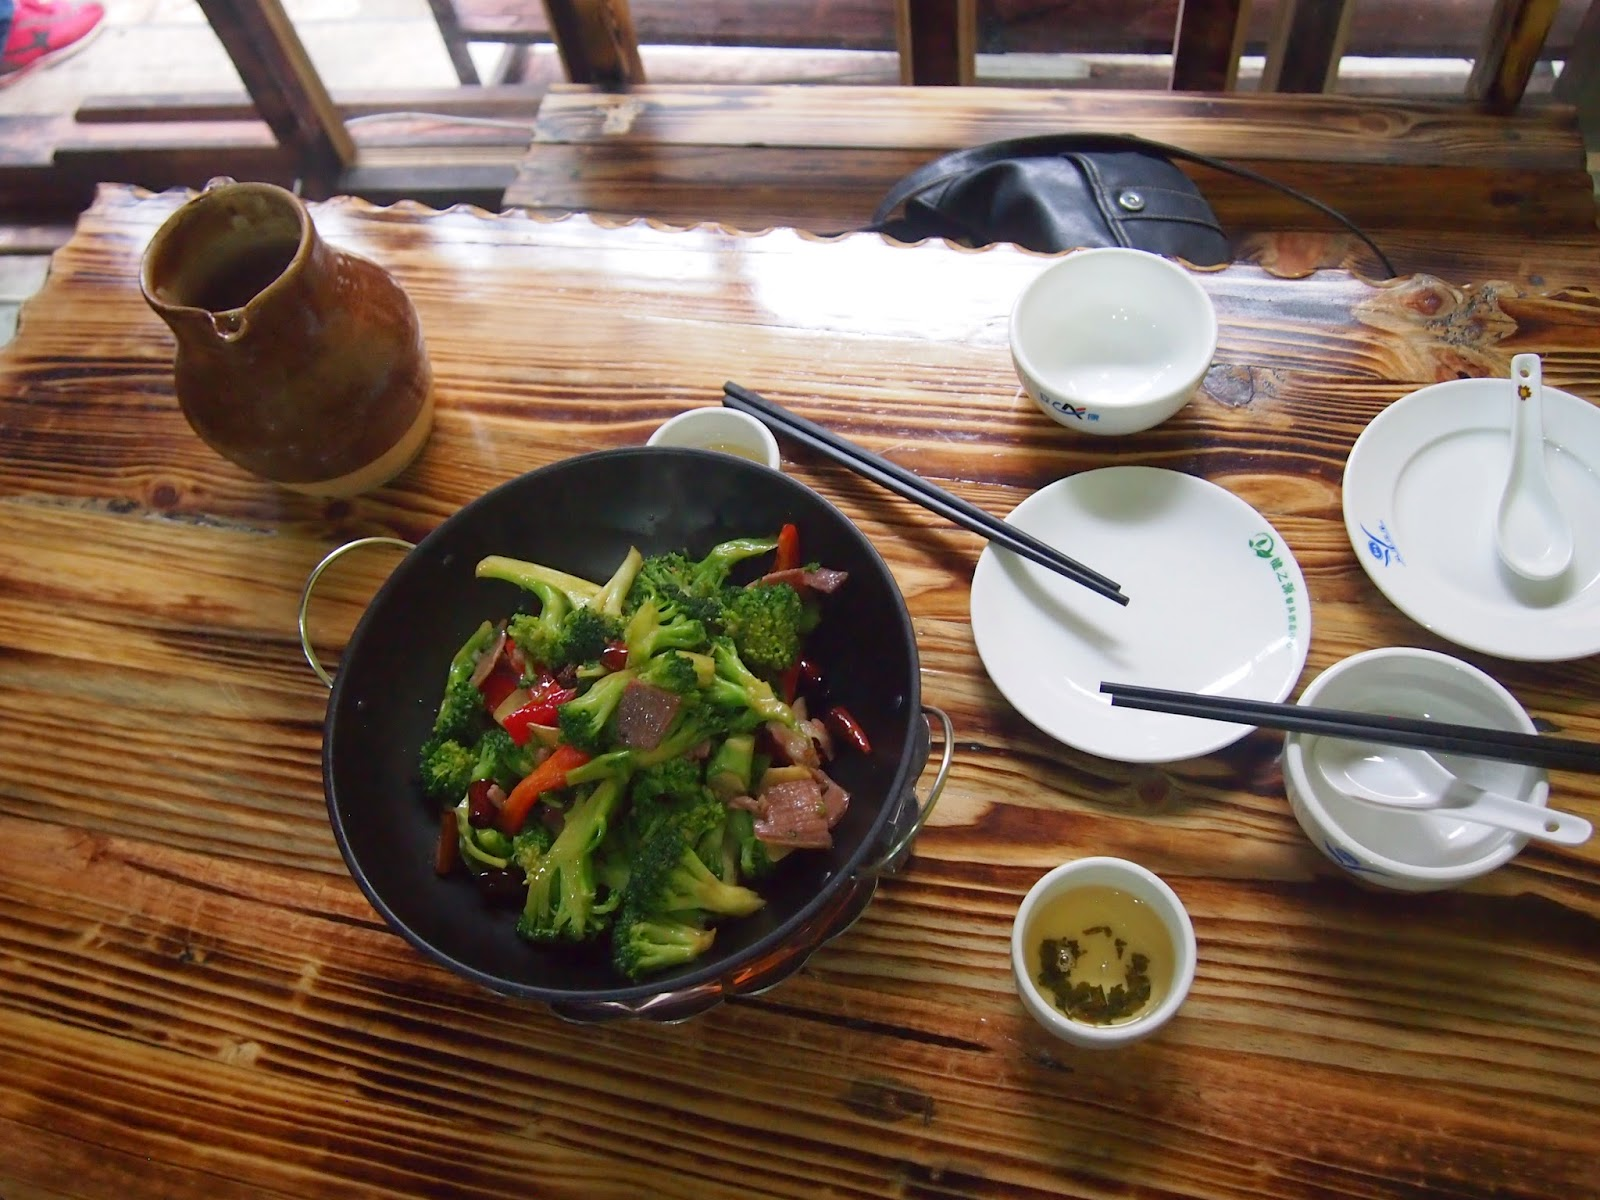 Yunnan broccoli dishes